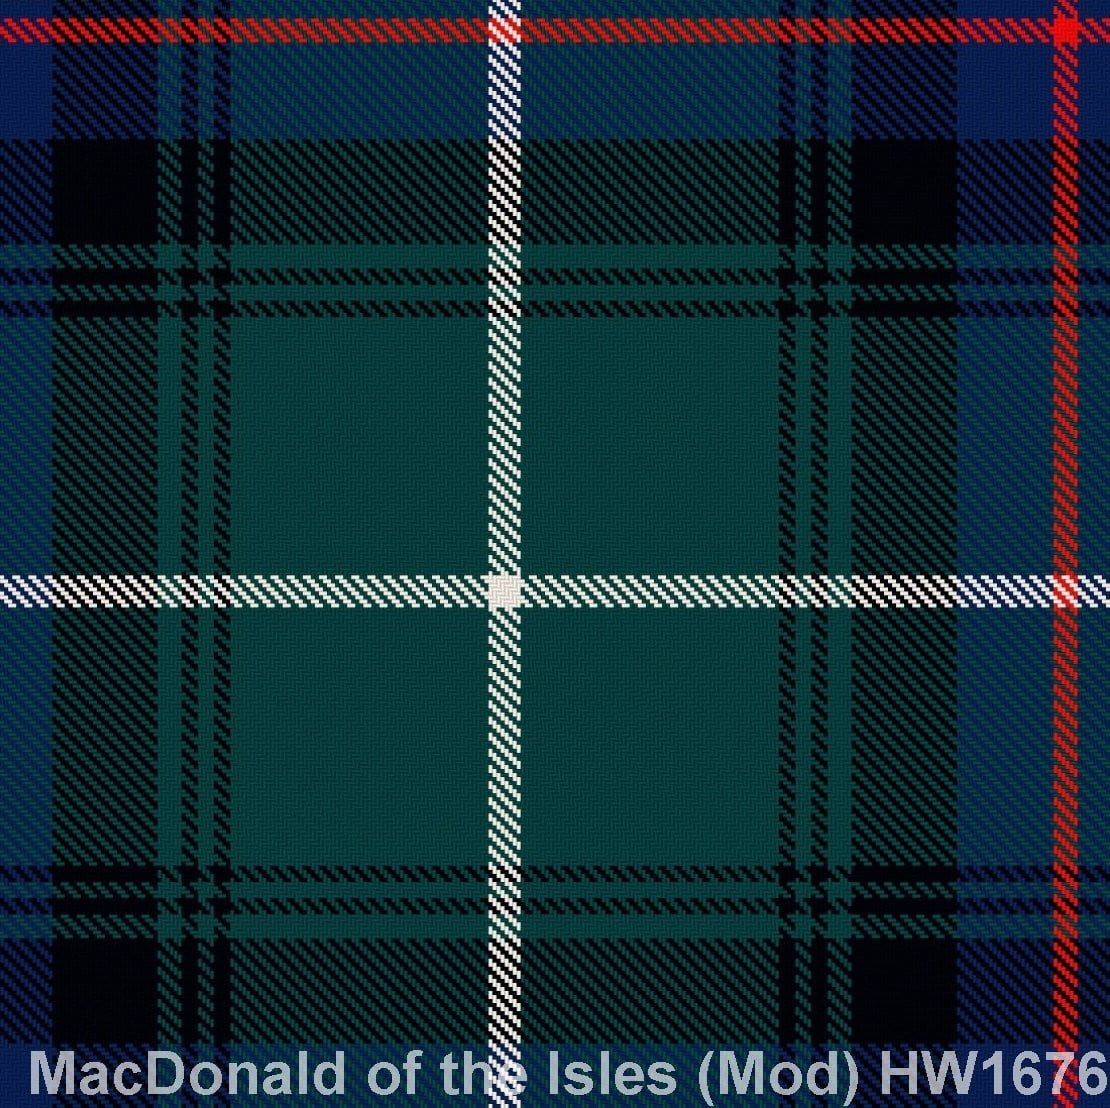 MacDonald Lord of the Isles Modern